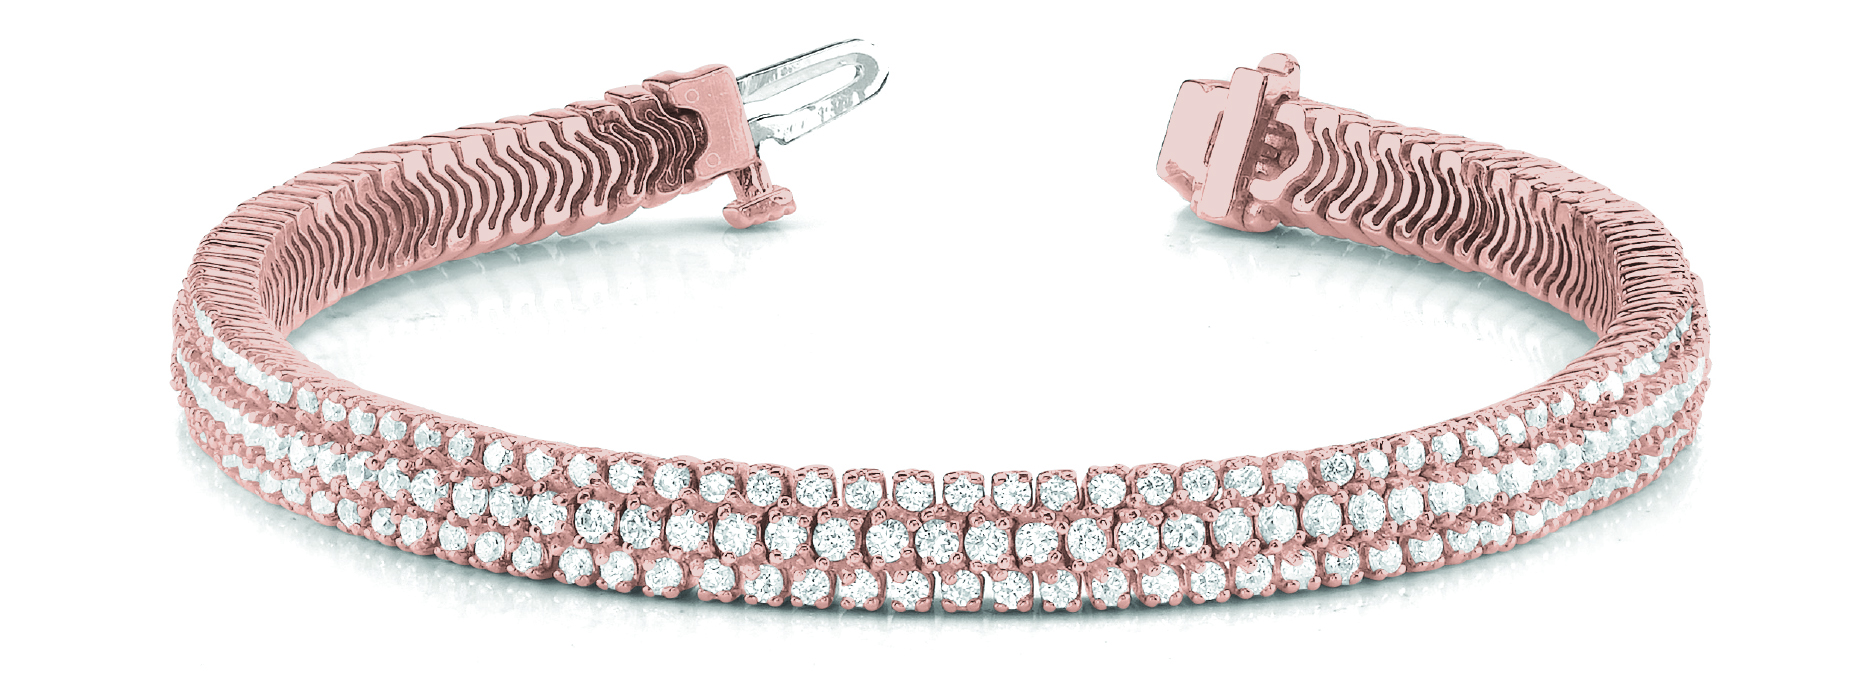 Multi Row Etoil Round Diamond Rose Gold Bracelet 6 Ct.